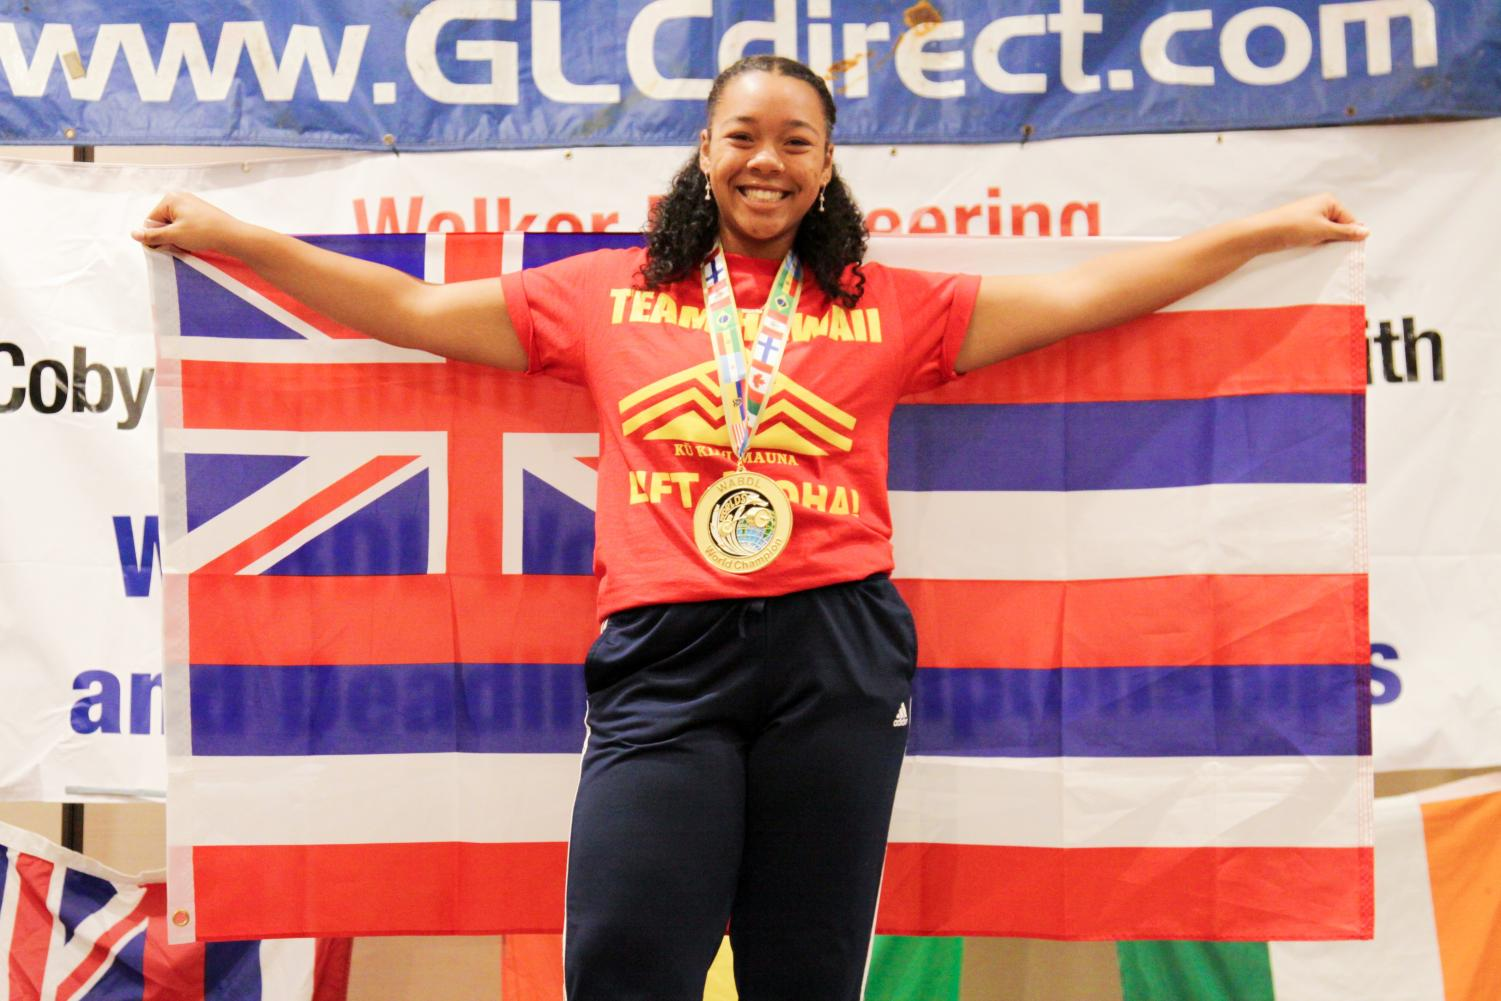 Jazzmin White (pictured), made a new world record for deadlifting 292 pounds.